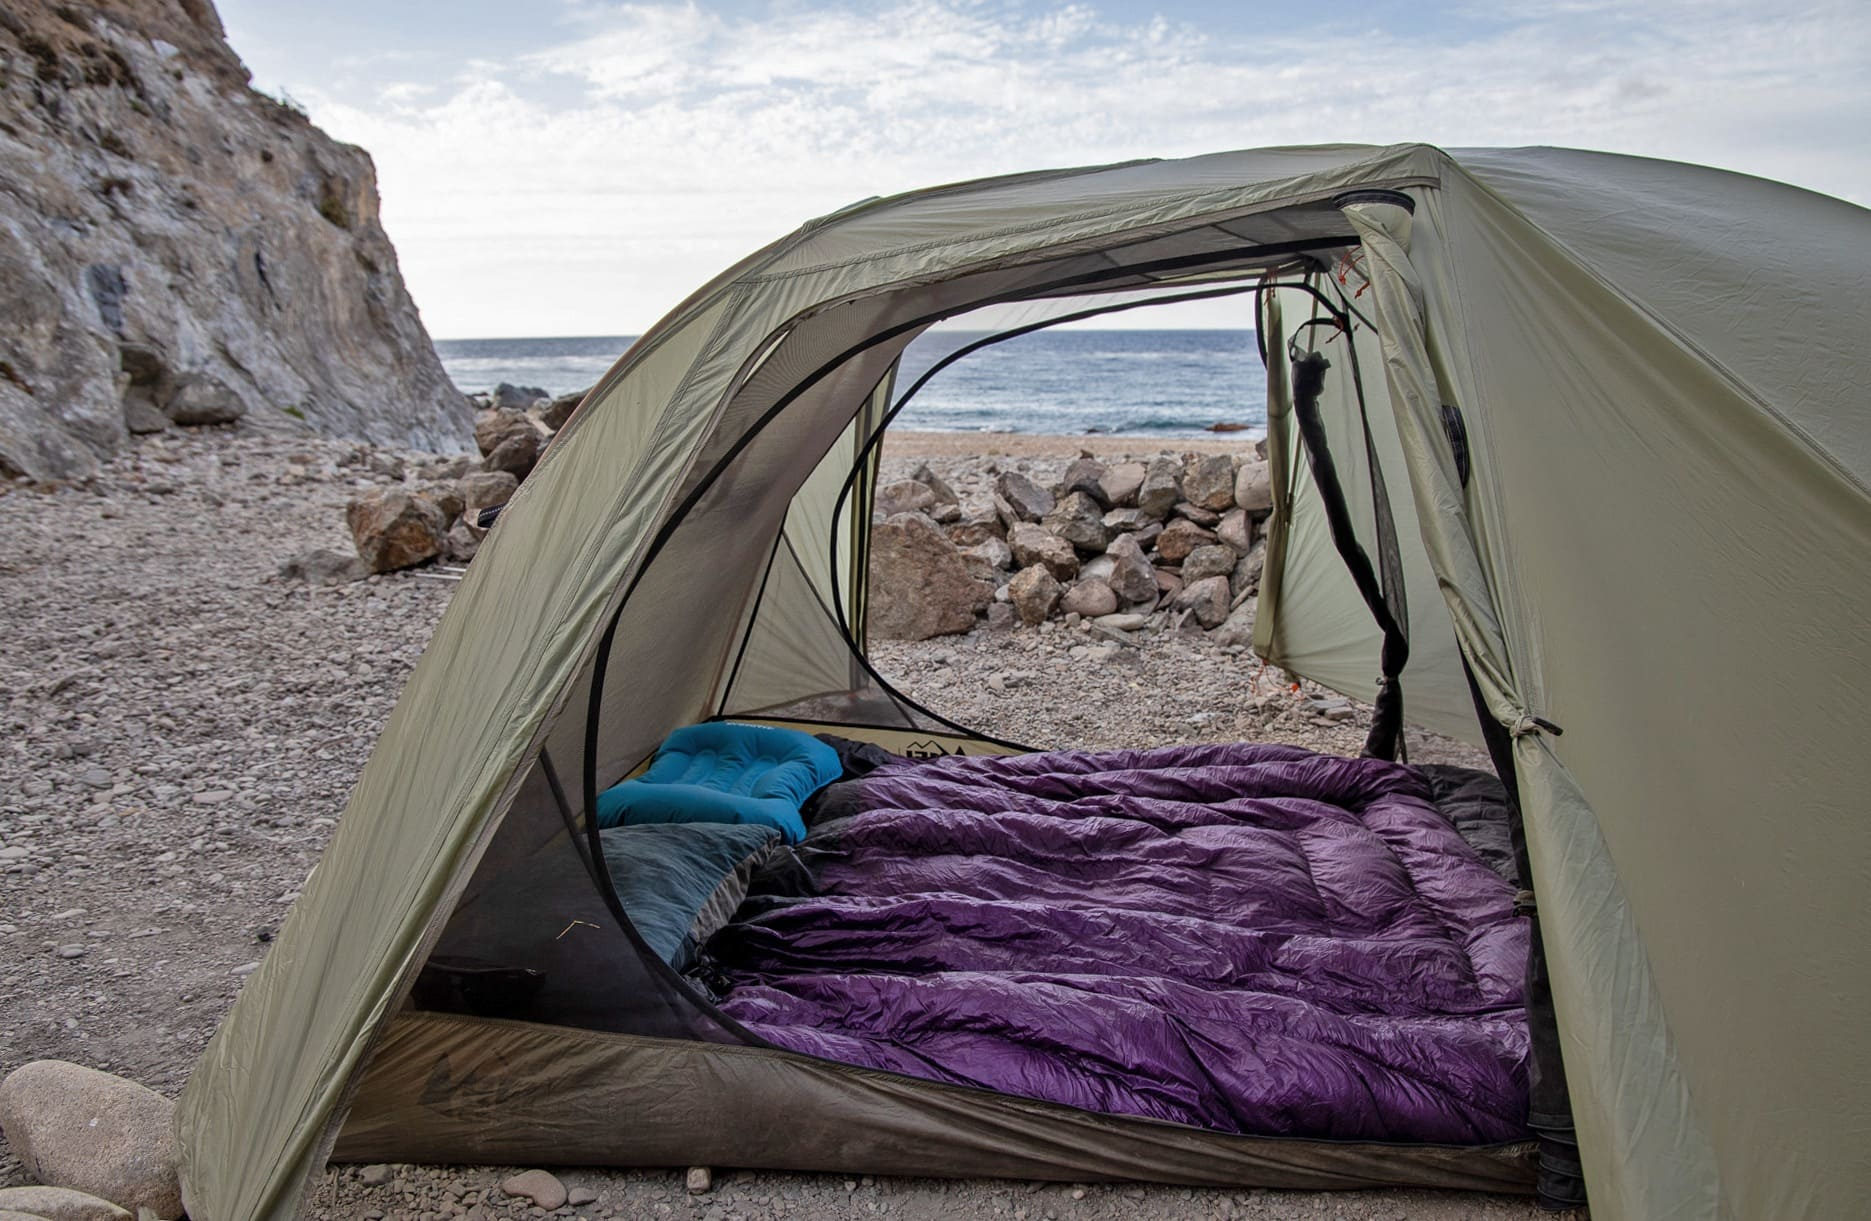 Sleeping back or quilt when backpacking? We've got options for both with our guide to the best sleeping bags for backpacking in 2021. The best sleeping bags for backpacking are lightweight, warm & comfortable.